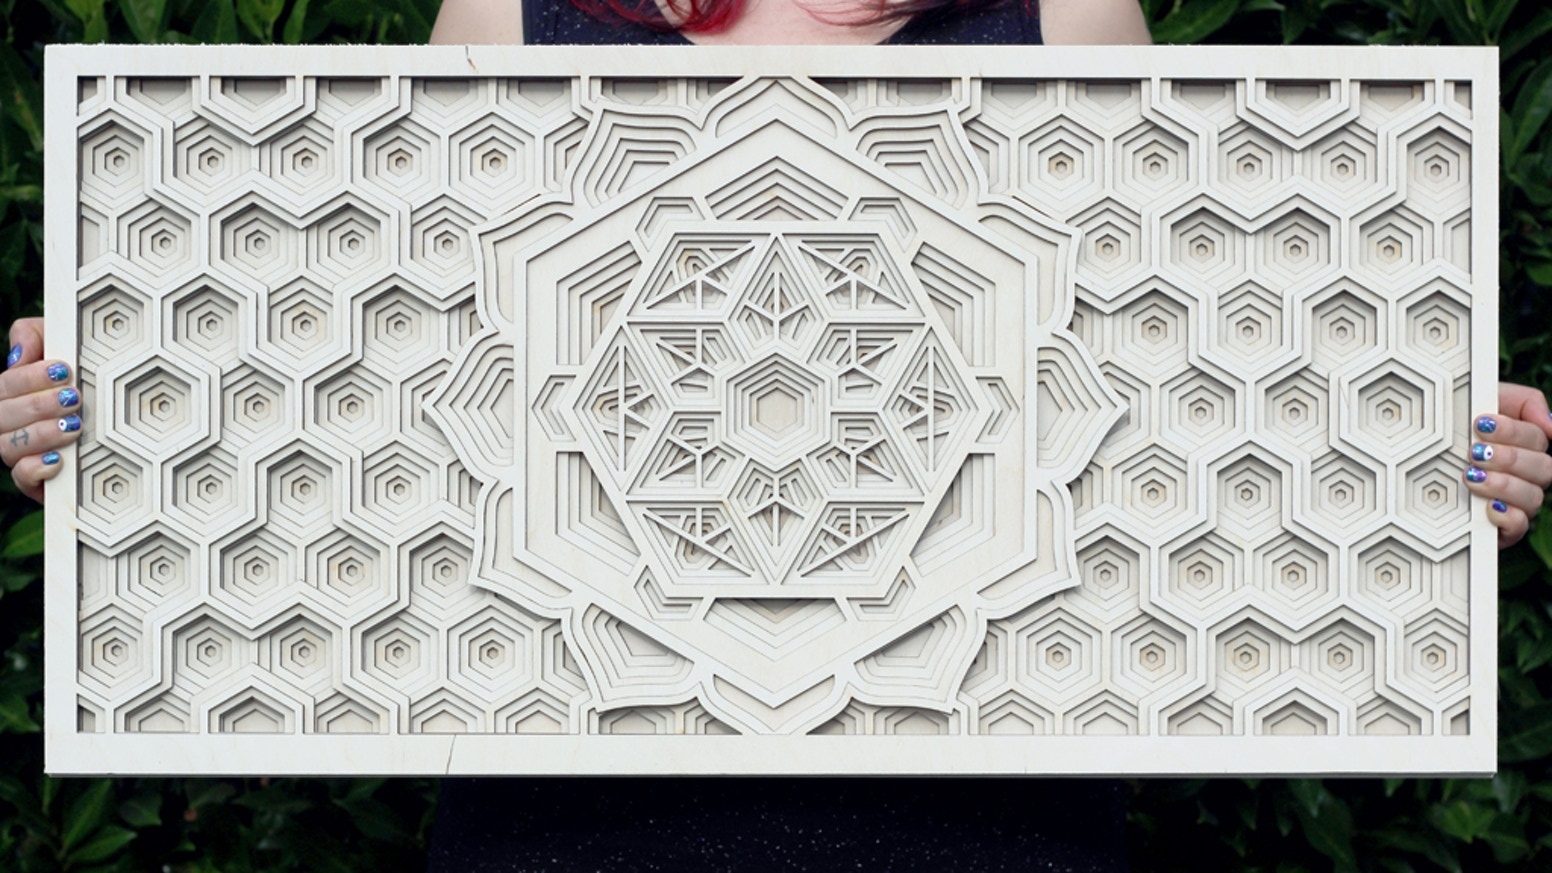 Help us buy a laser and we'll send you a beautiful mandala that reflects the beauty and intricacies of geometry in nature!